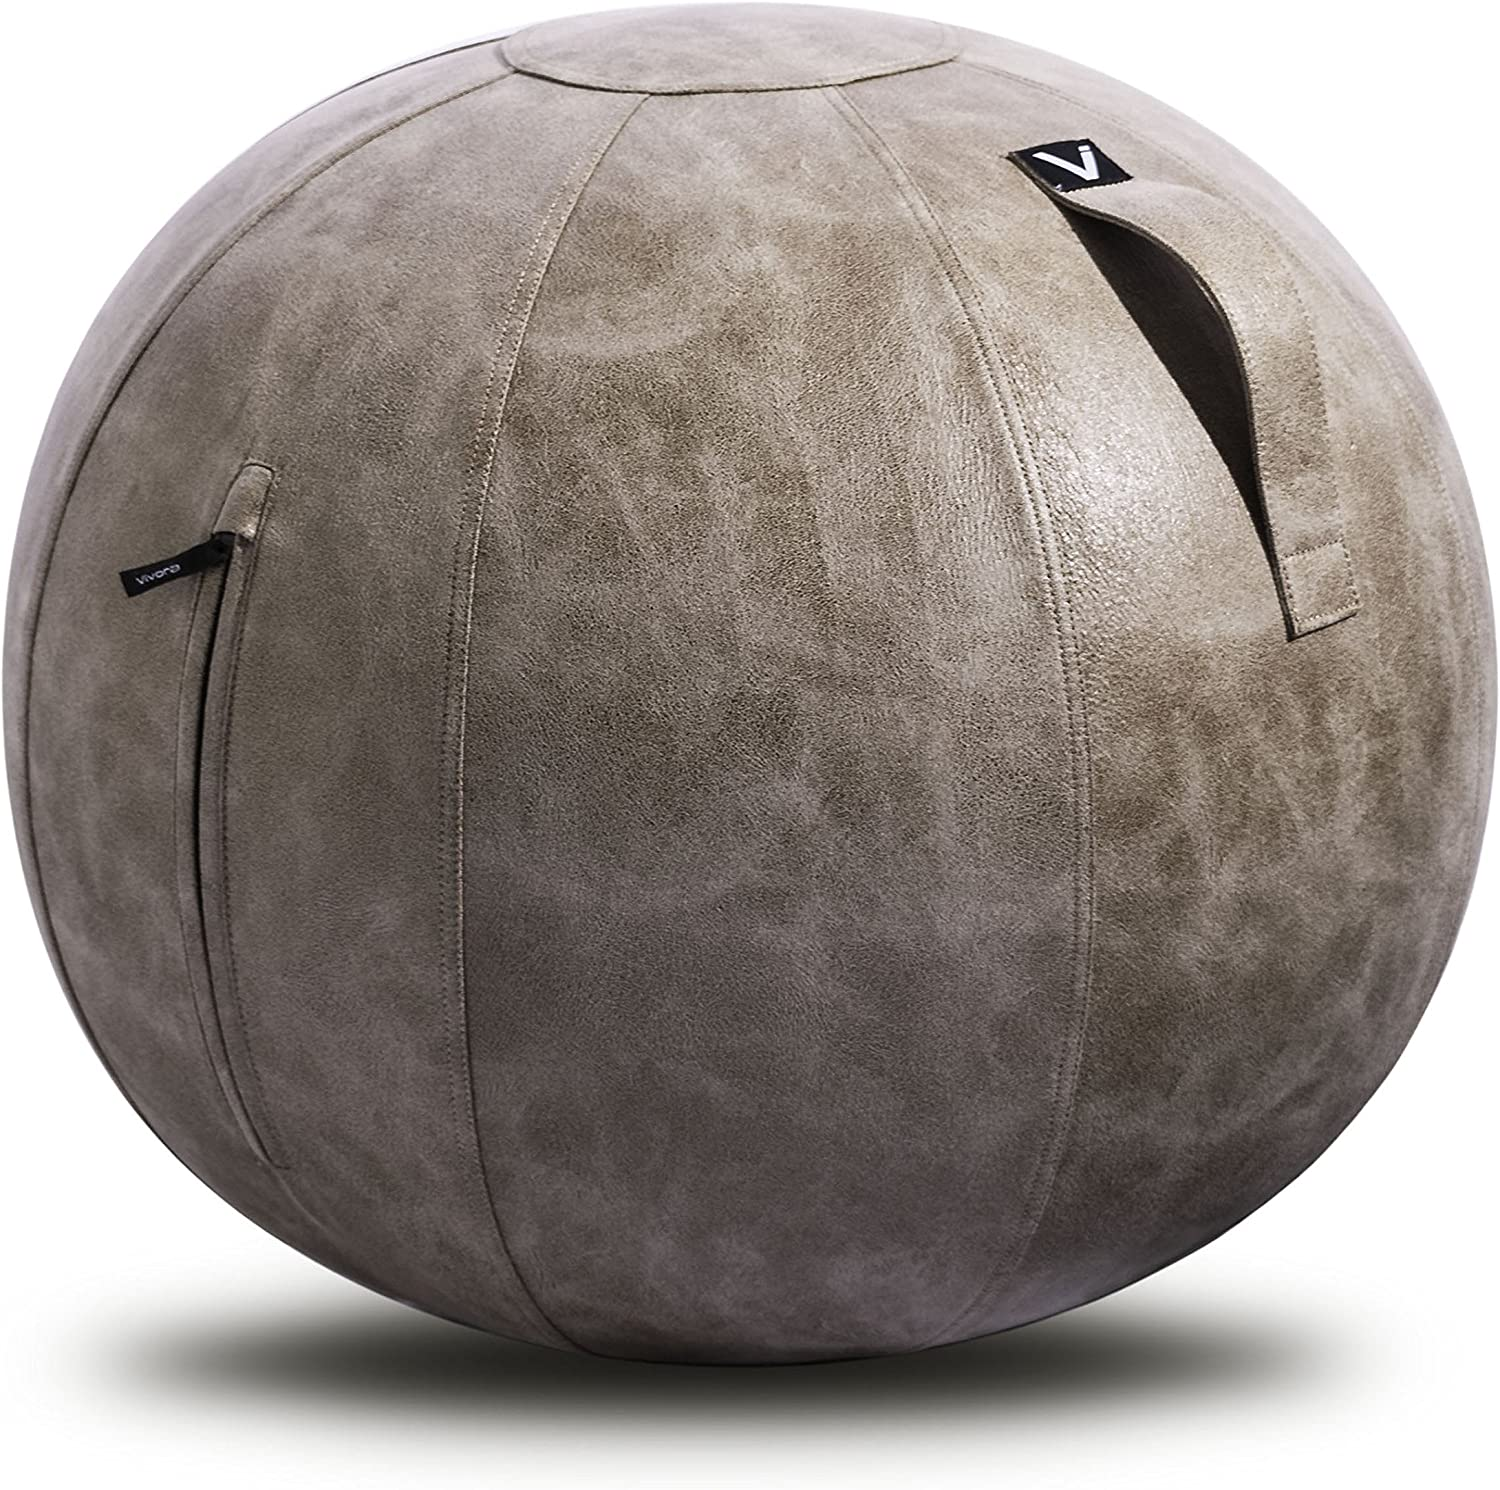 Vivora Luno - Sitting Ball Chair for Office and Home, Lightweight Self-Standing Ergonomic Posture Activating Exercise Ball Solution with Handle & Cover, Classroom & Yoga, Standard